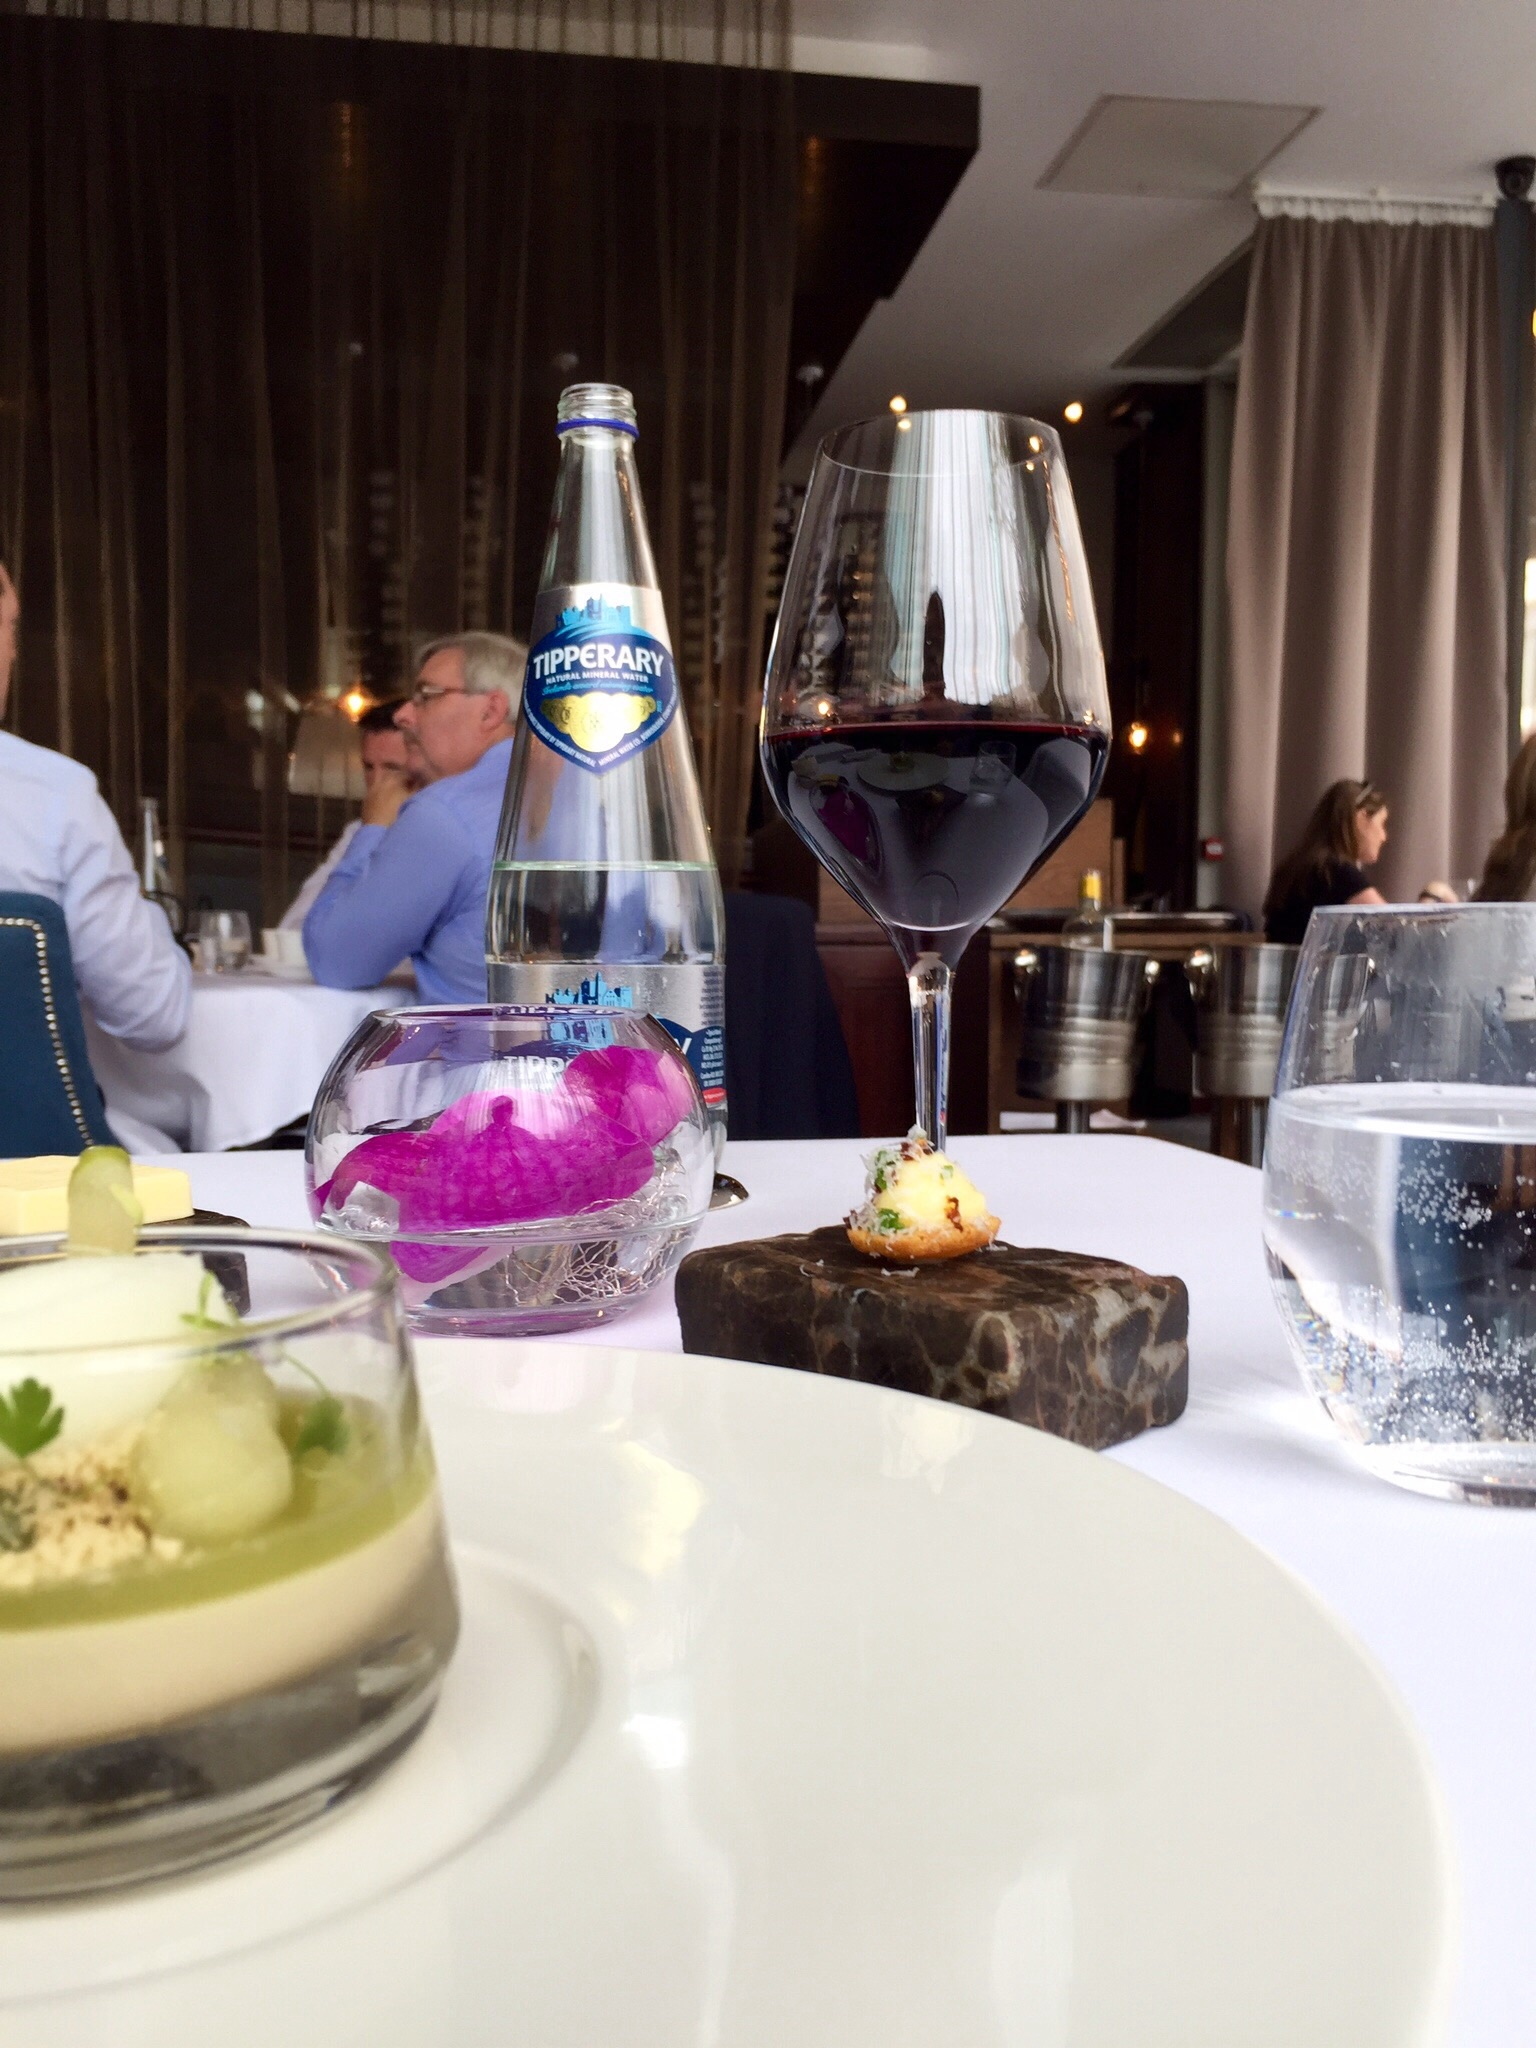 The greenhouse restaurant dublin - Etto On Merrion Row Was Added To The Michelin Bib Gourmand List That Recognize Restaurants That Offer Excellent Food At Affordable Prices